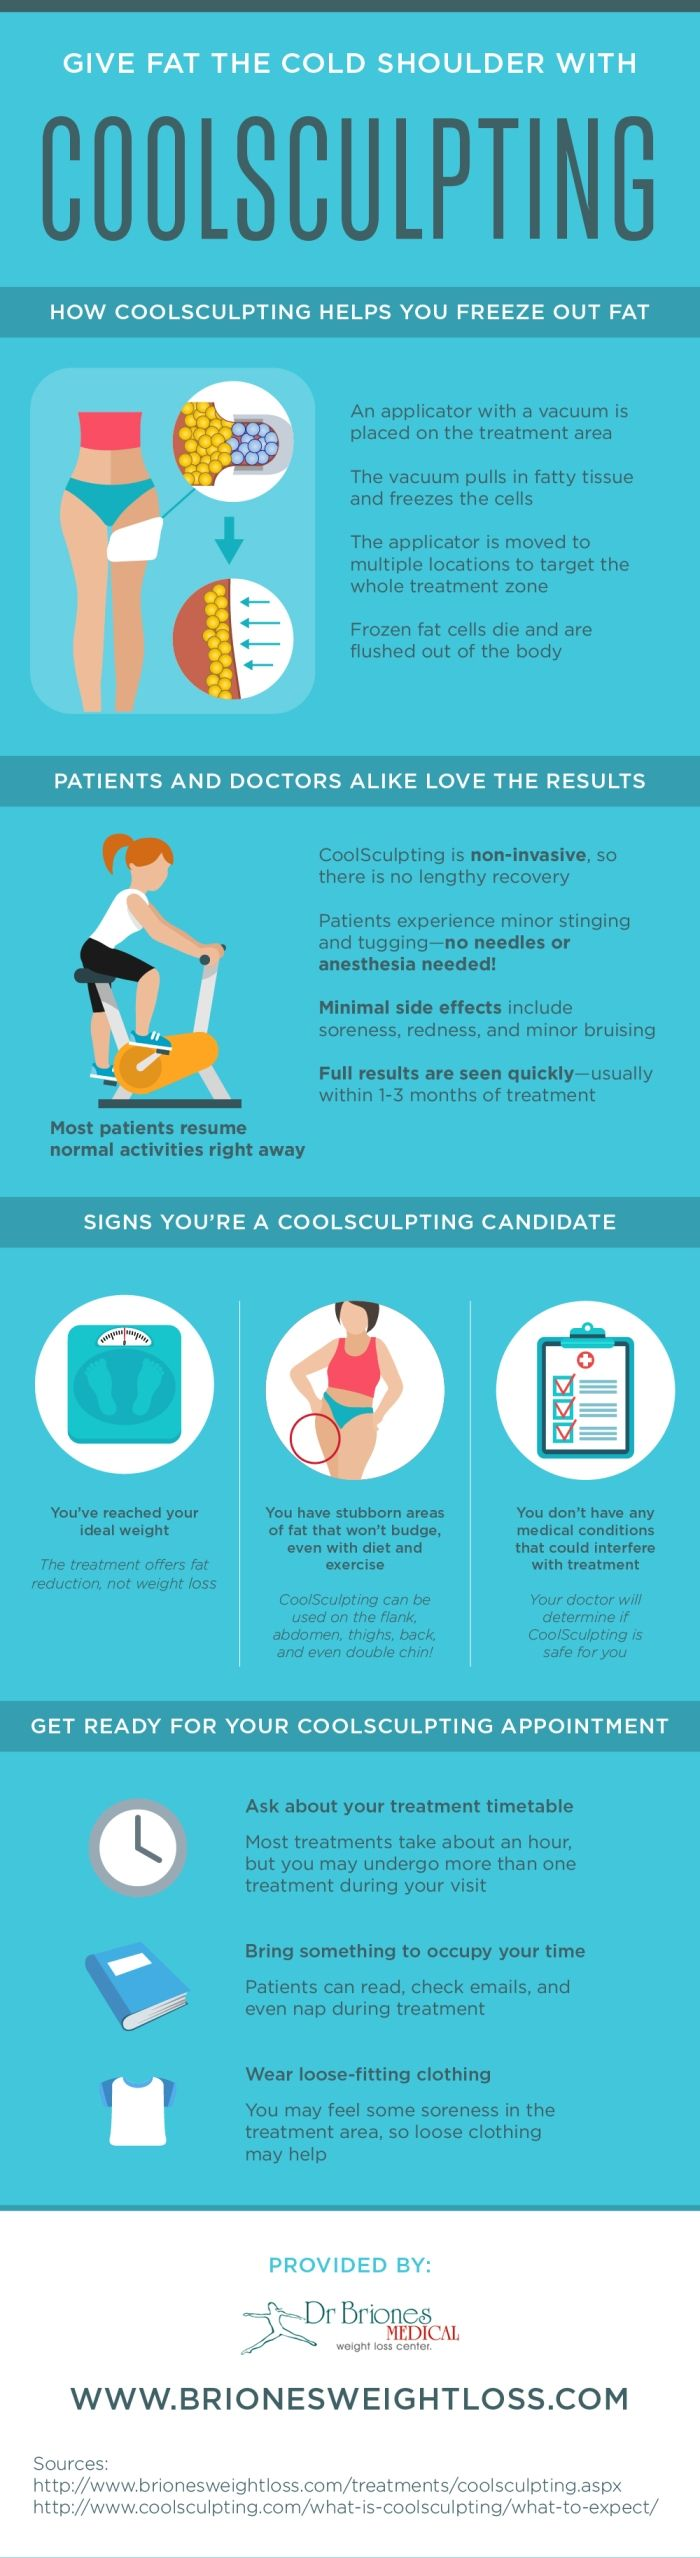 One of the best parts about CoolSculpting is that you won't have to go through a long recovery! Learn about how this treatment can help you by looking at this infographic. #infographic #datavisualization #coolsculpting #fat